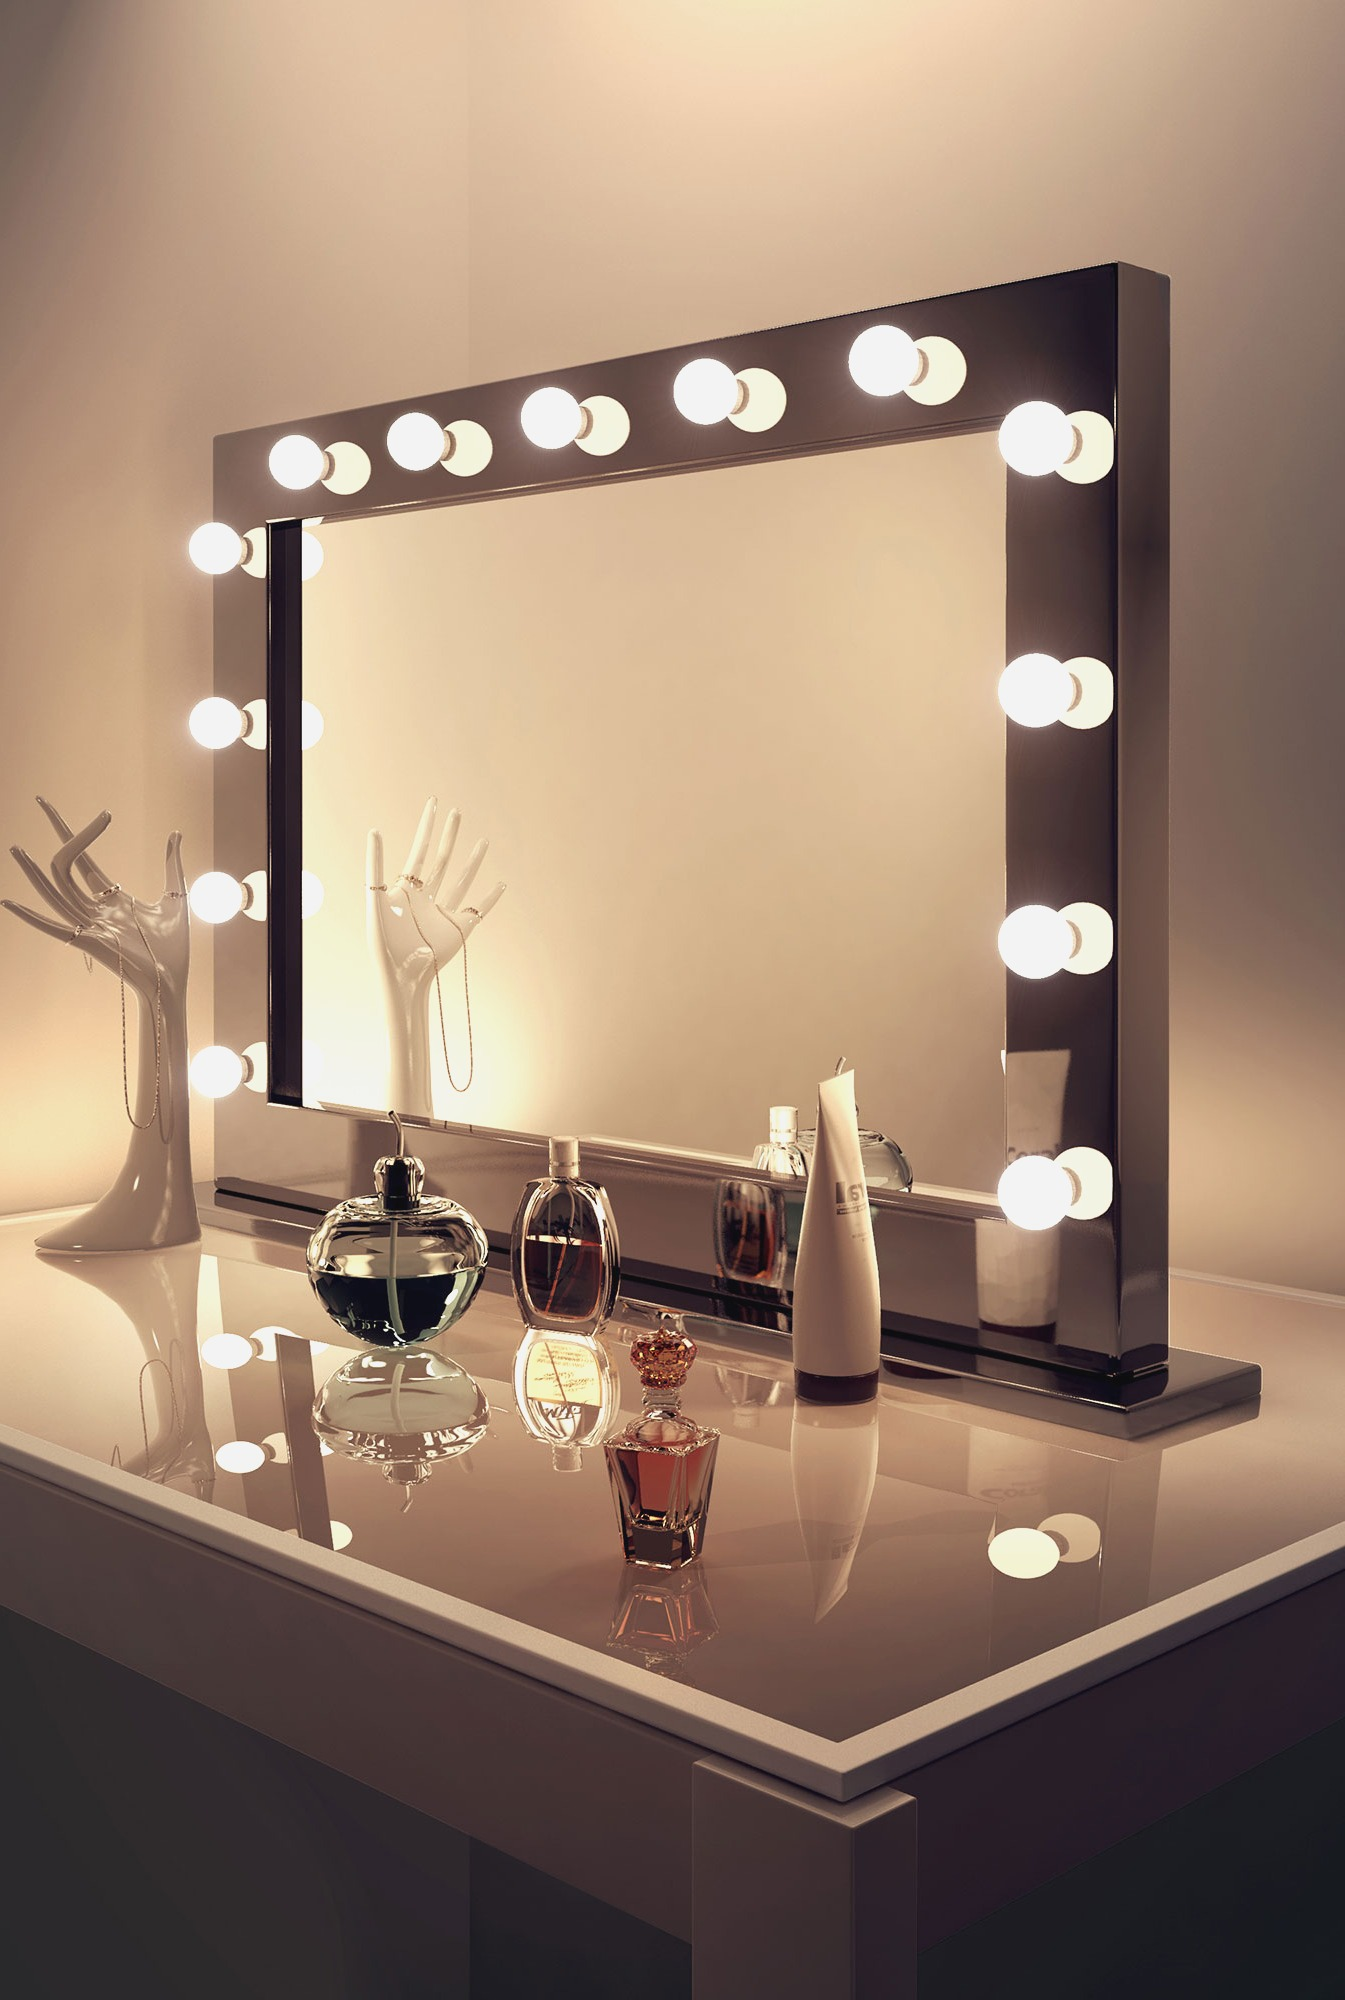 Mirrors lighted makeup vanity hollywood vanity mirror with lights makeup vanity with lighted mirror light up makeup vanity hollywood vanity mirror with lights aloadofball Gallery